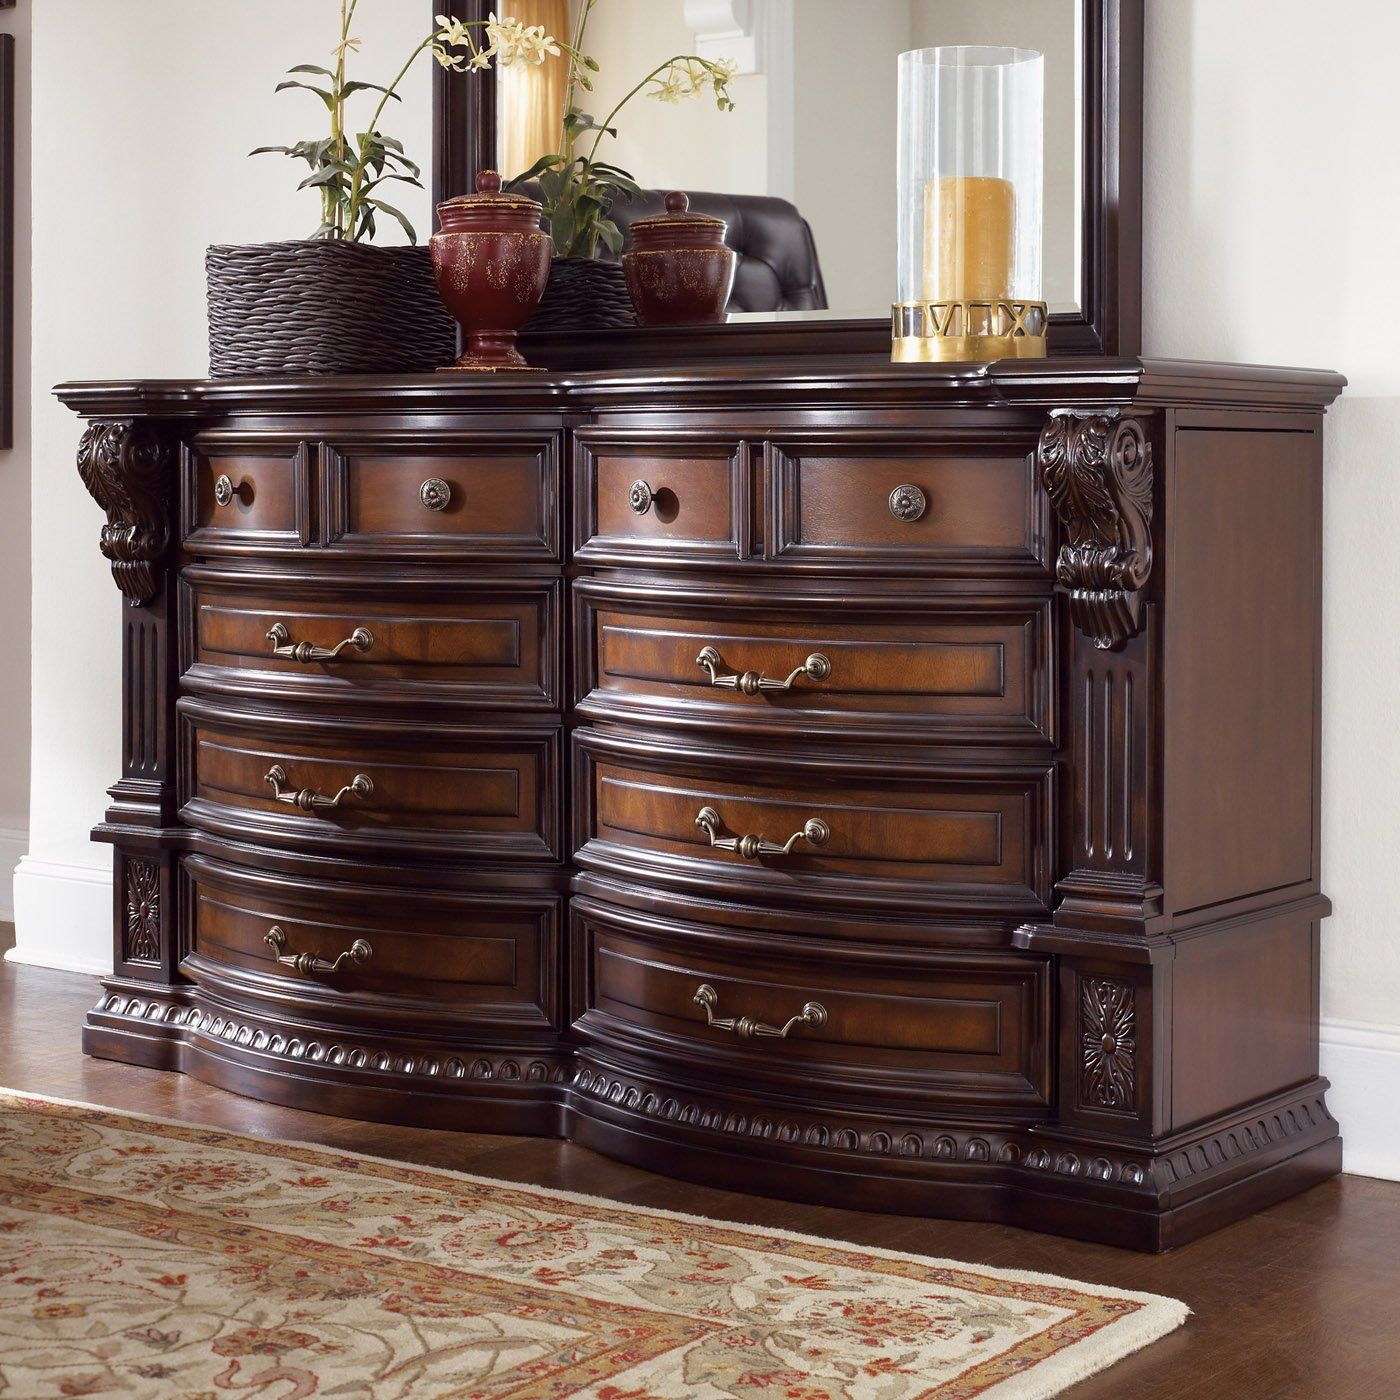 Fairmont Designs Furniture C7102 05 Grand Estates Dresser Home  # Muebles Fairmont